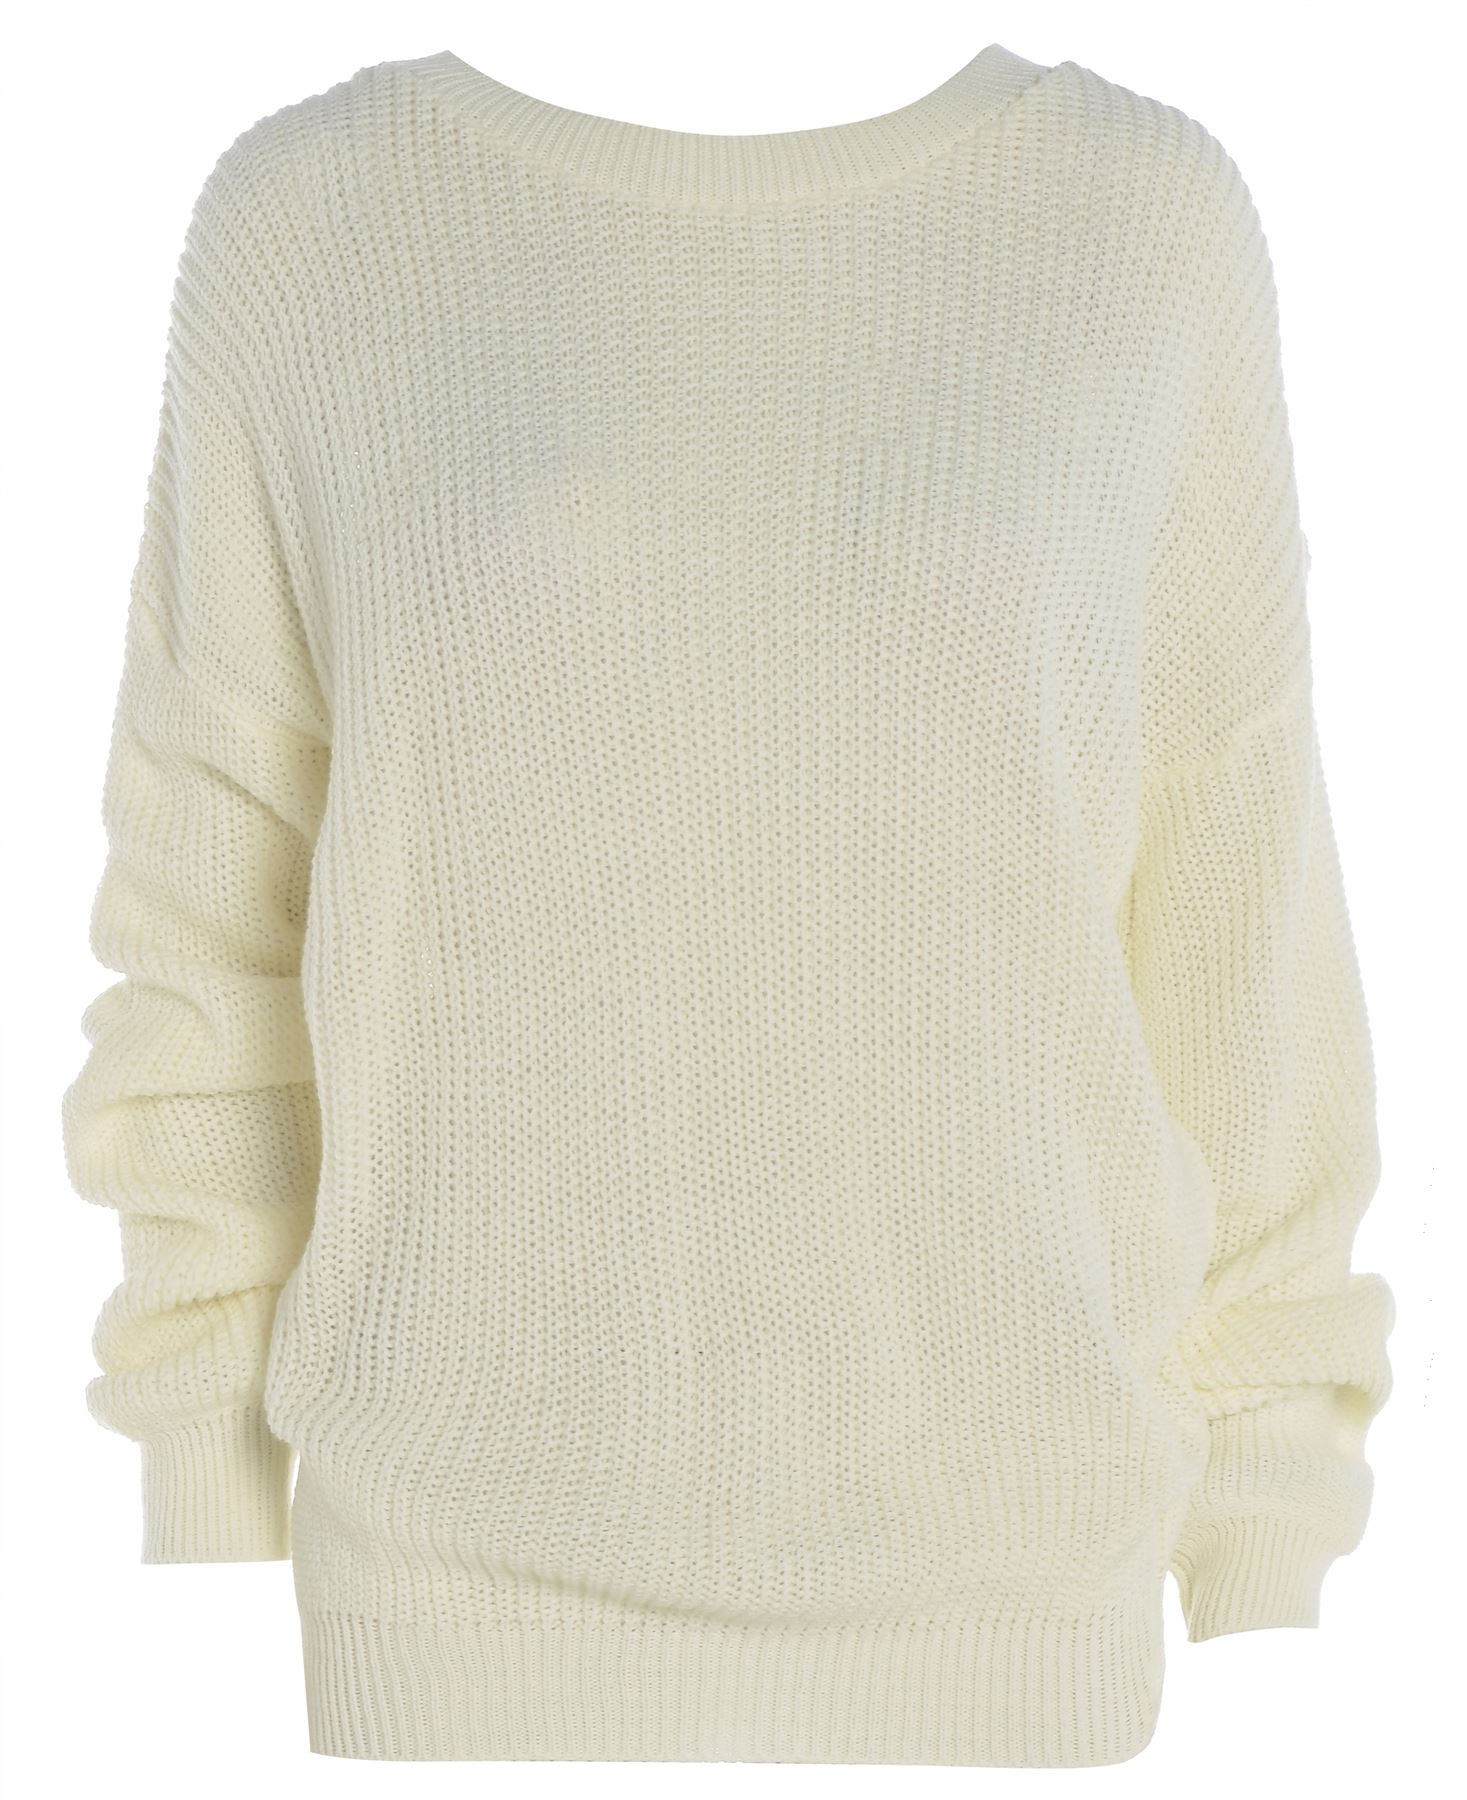 New Ladies Womens Plain Oversized Baggy Knitted Jumper Chunky Sweater Top Rib...